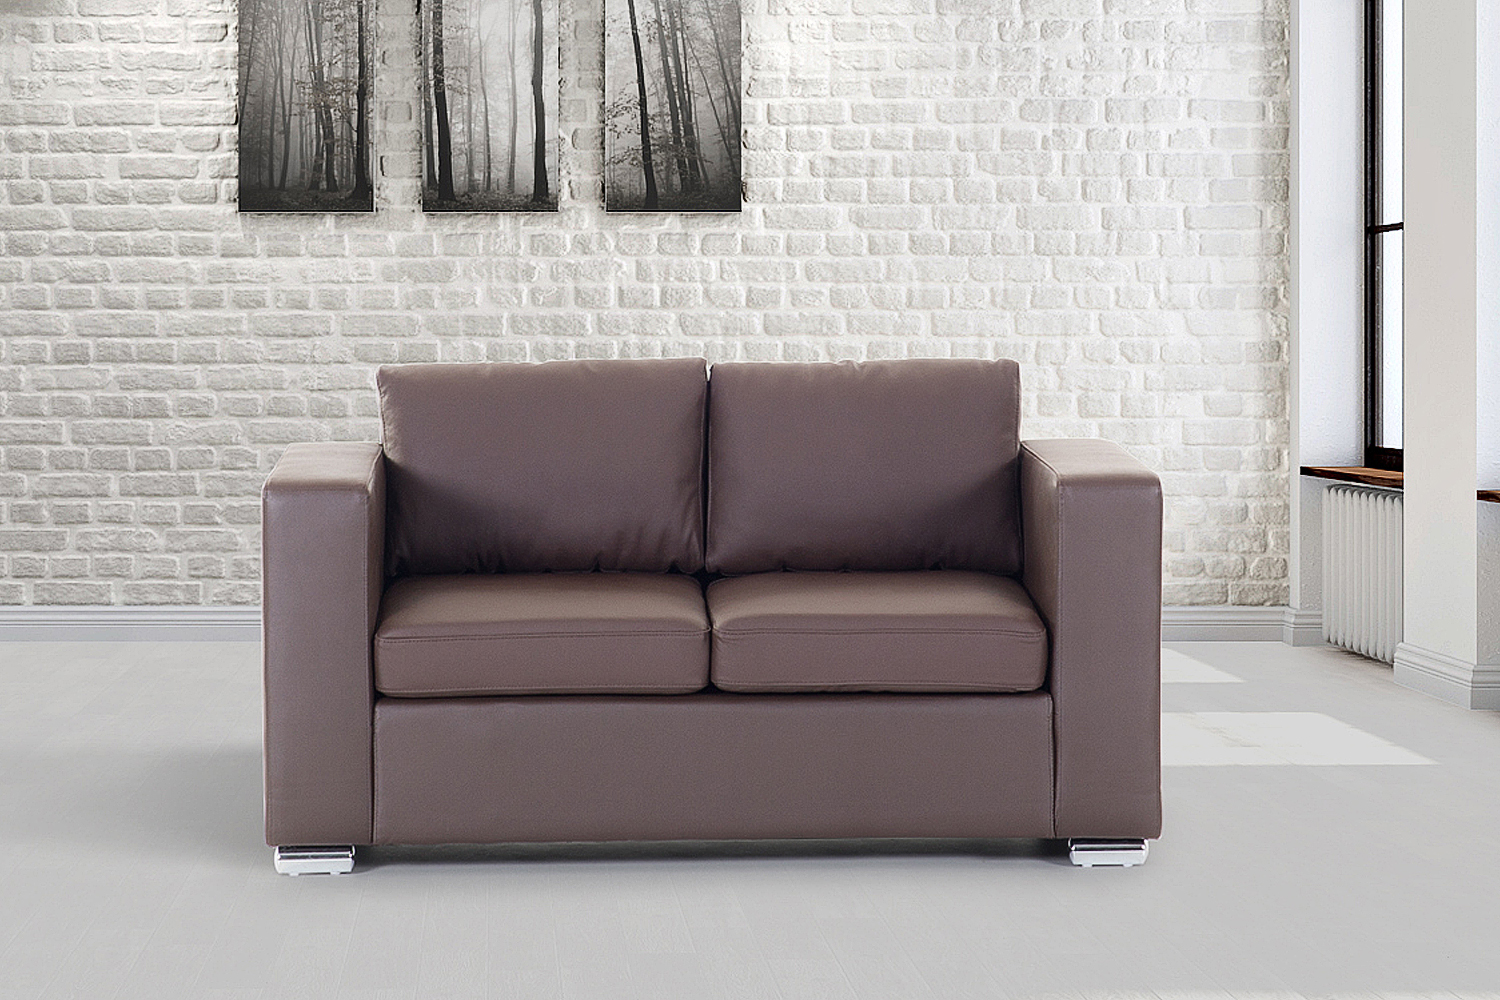 Leather Sofa Love Seat Living Room Furniture Couch